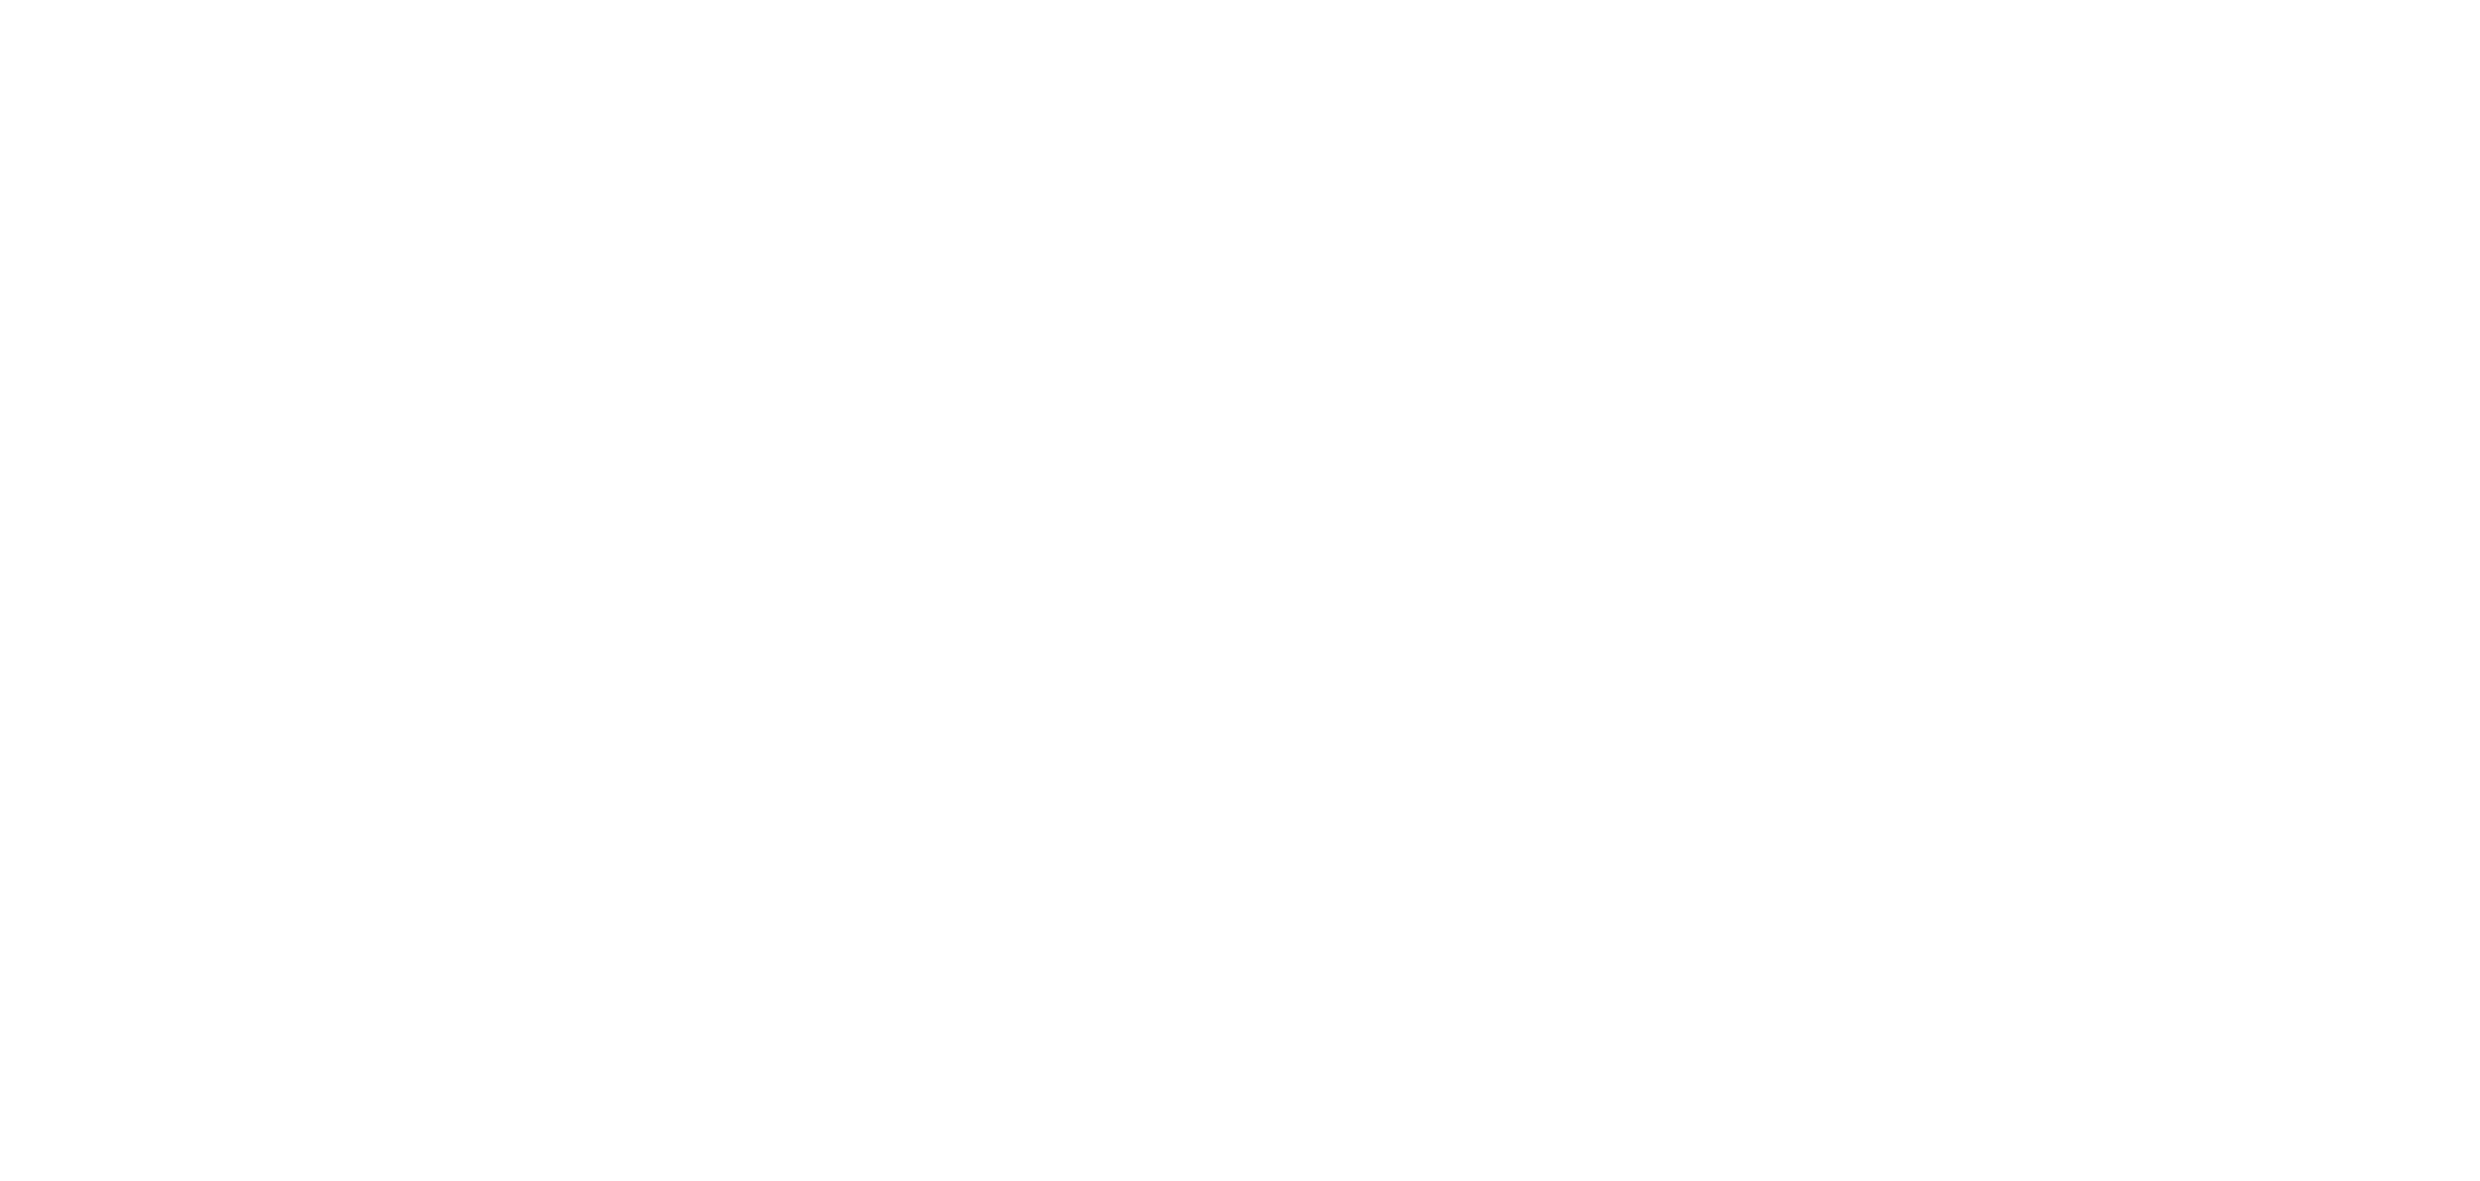 Kammerensemble Berlin